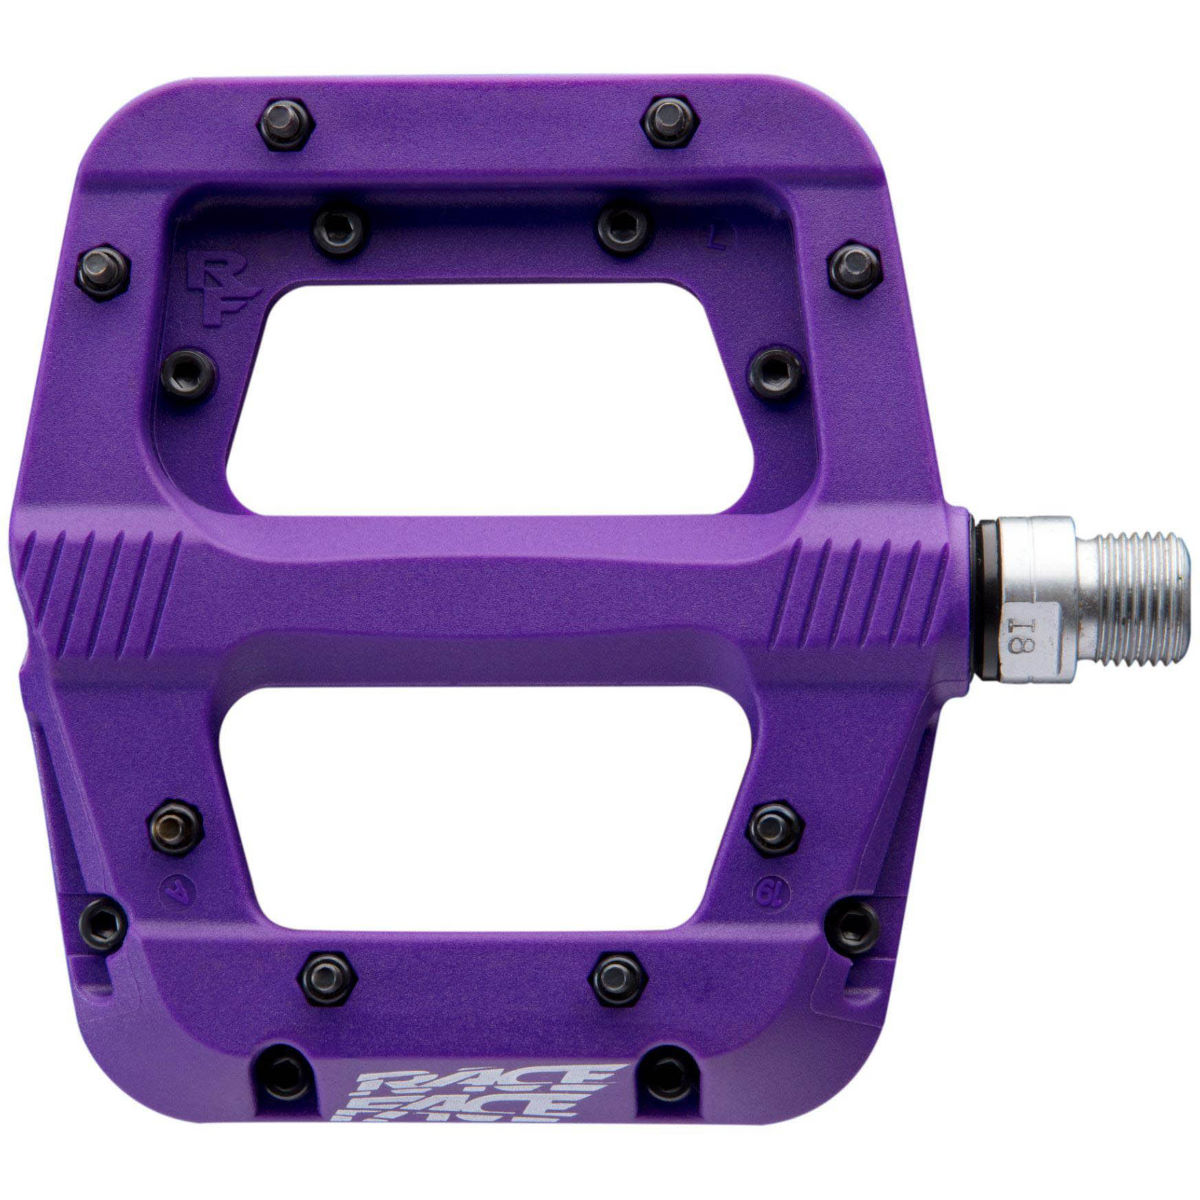 Race Face Chester Pedals - One Size Purple  Flat Pedals